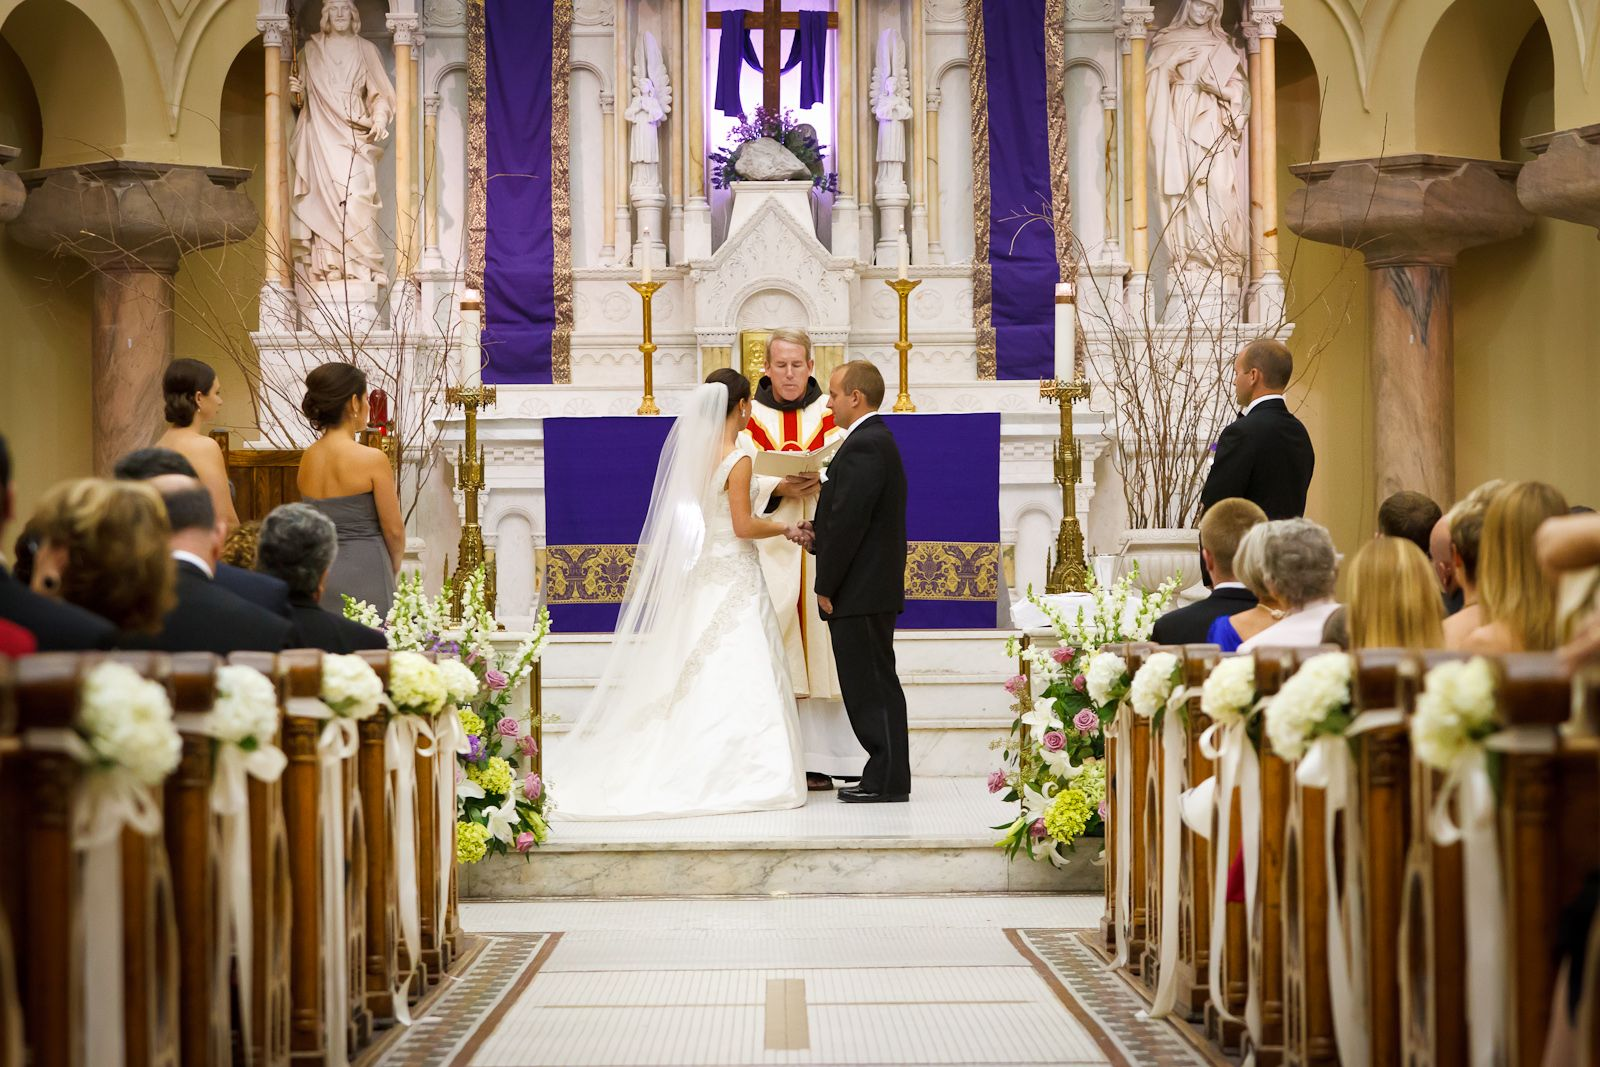 Aisle Flowers By Botanica Wedding Weddingflowers At Sacred Heart Catholic Church Ceremony Tampa Fl